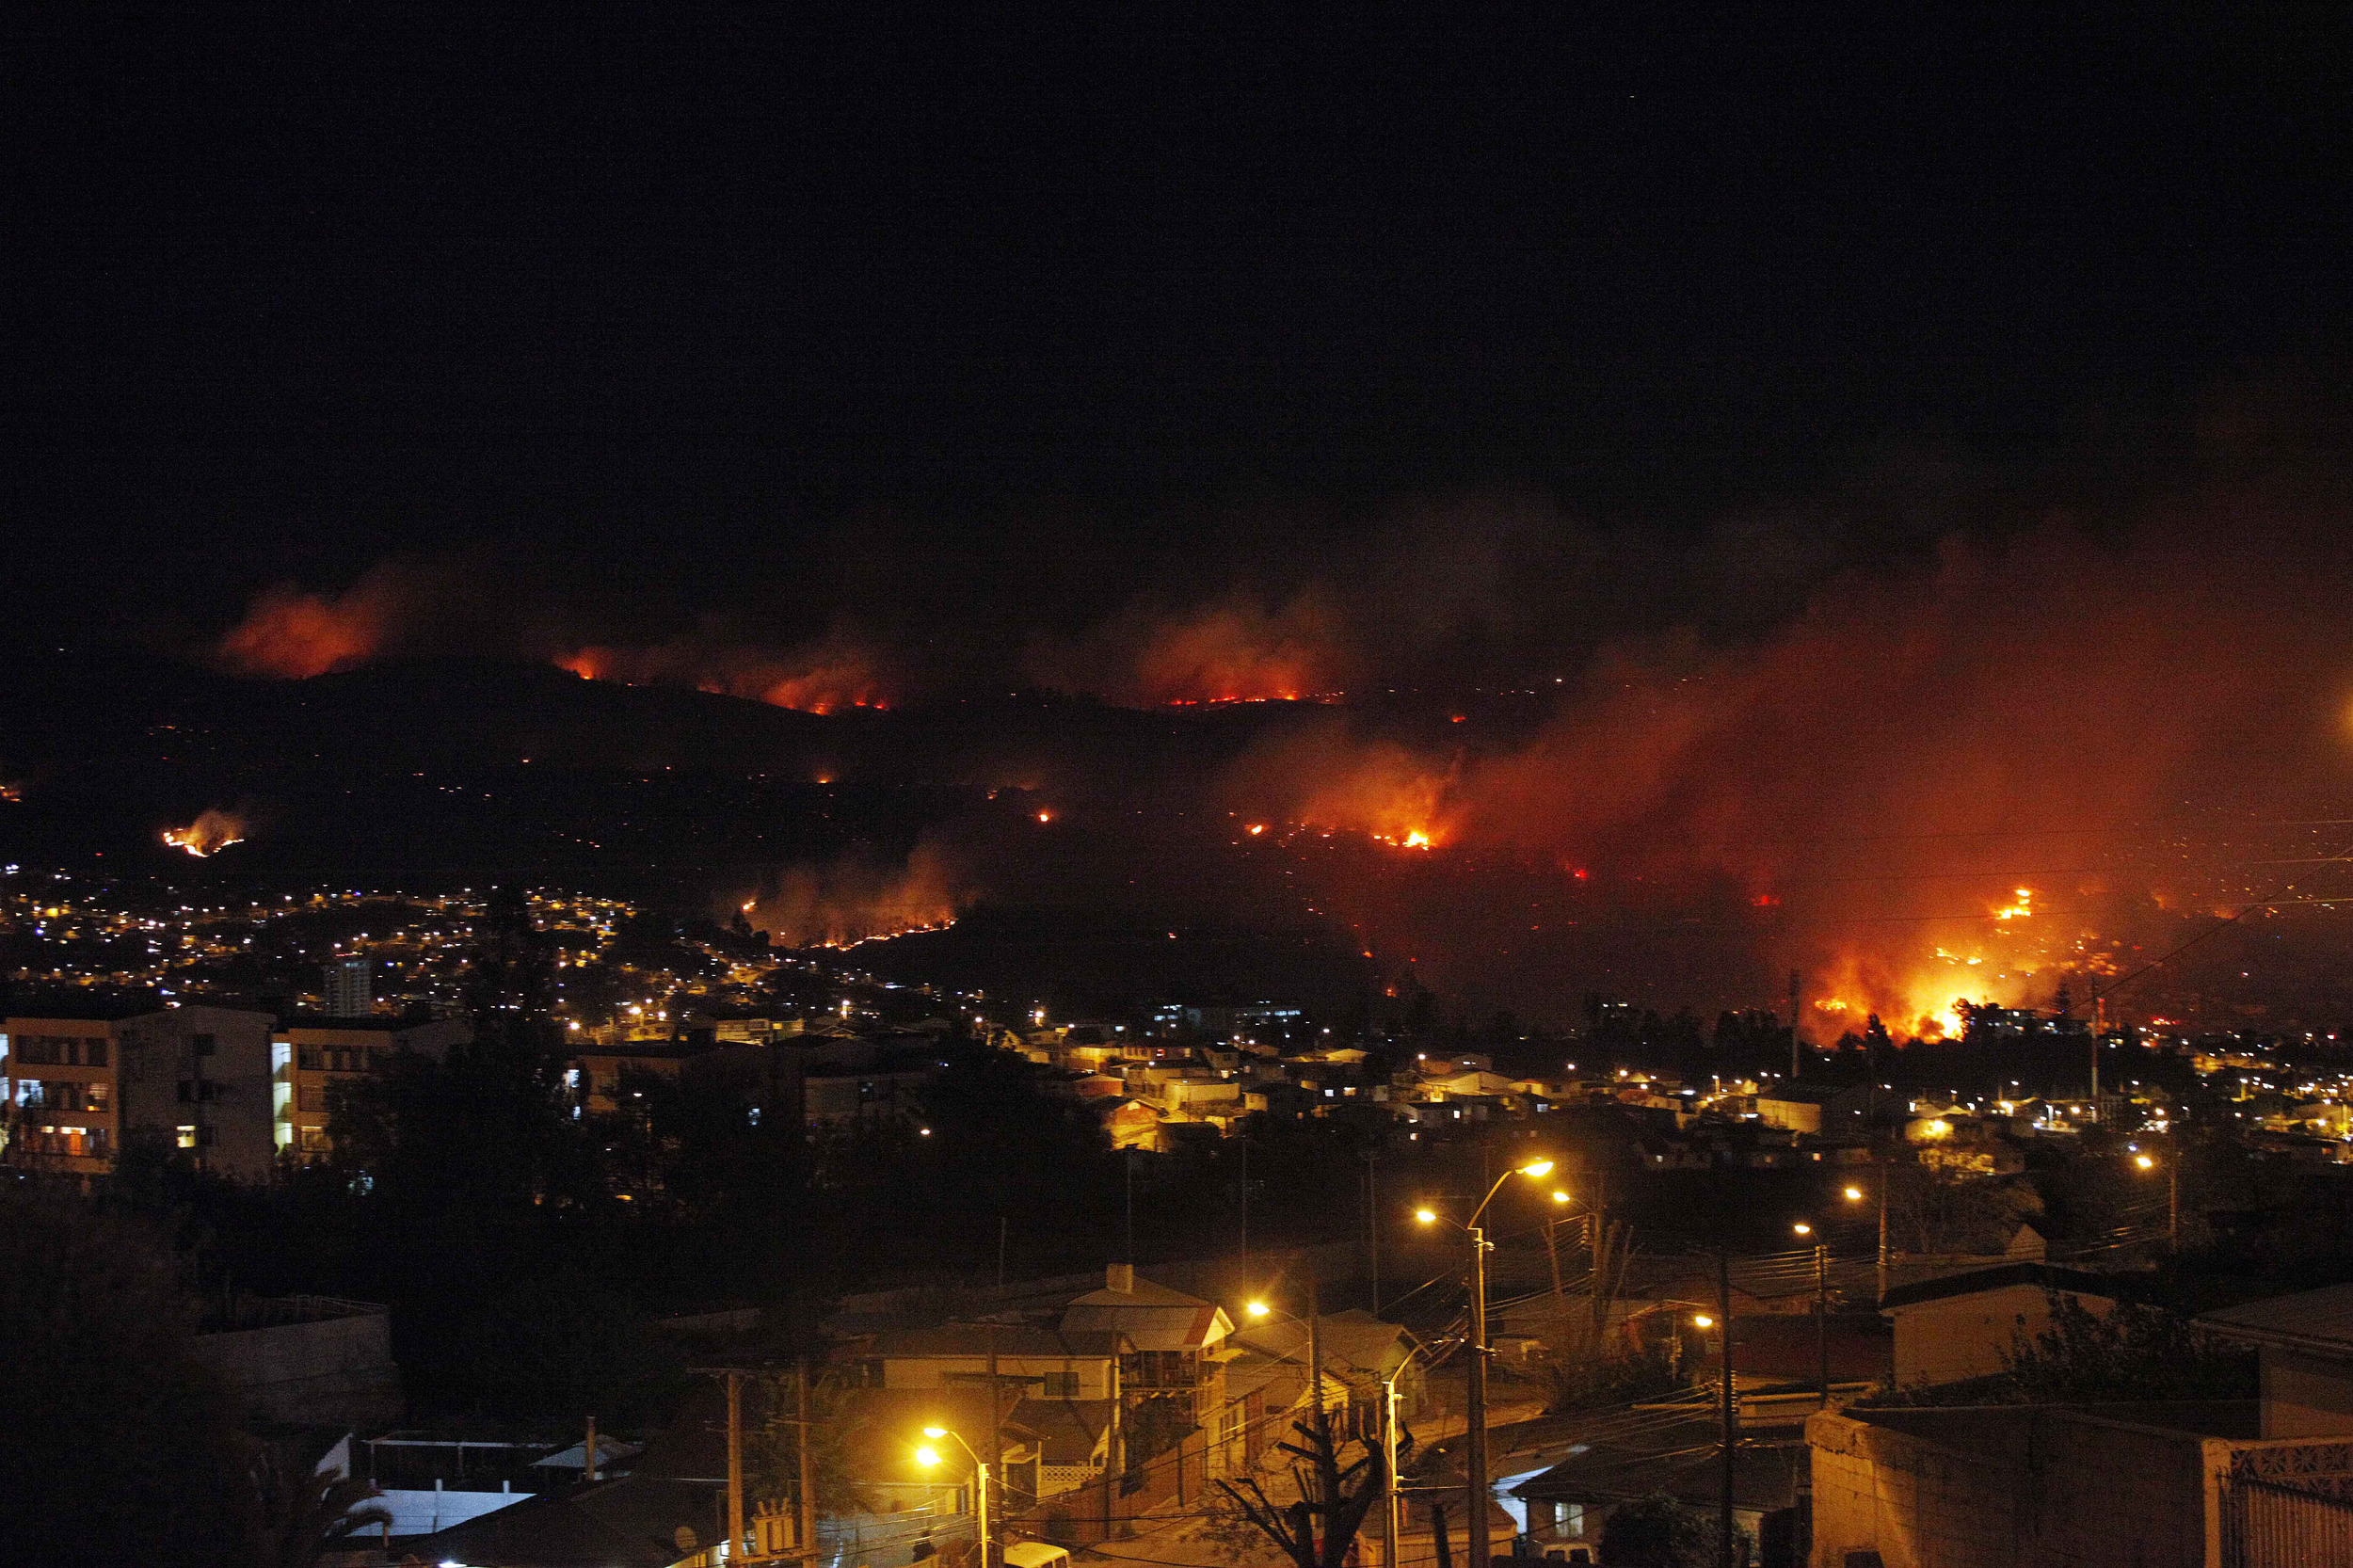 https://i1.wp.com/www.blogcdn.com/slideshows/images/slides/253/241/3/S2532413/slug/l/chile-forest-fire-1.jpg